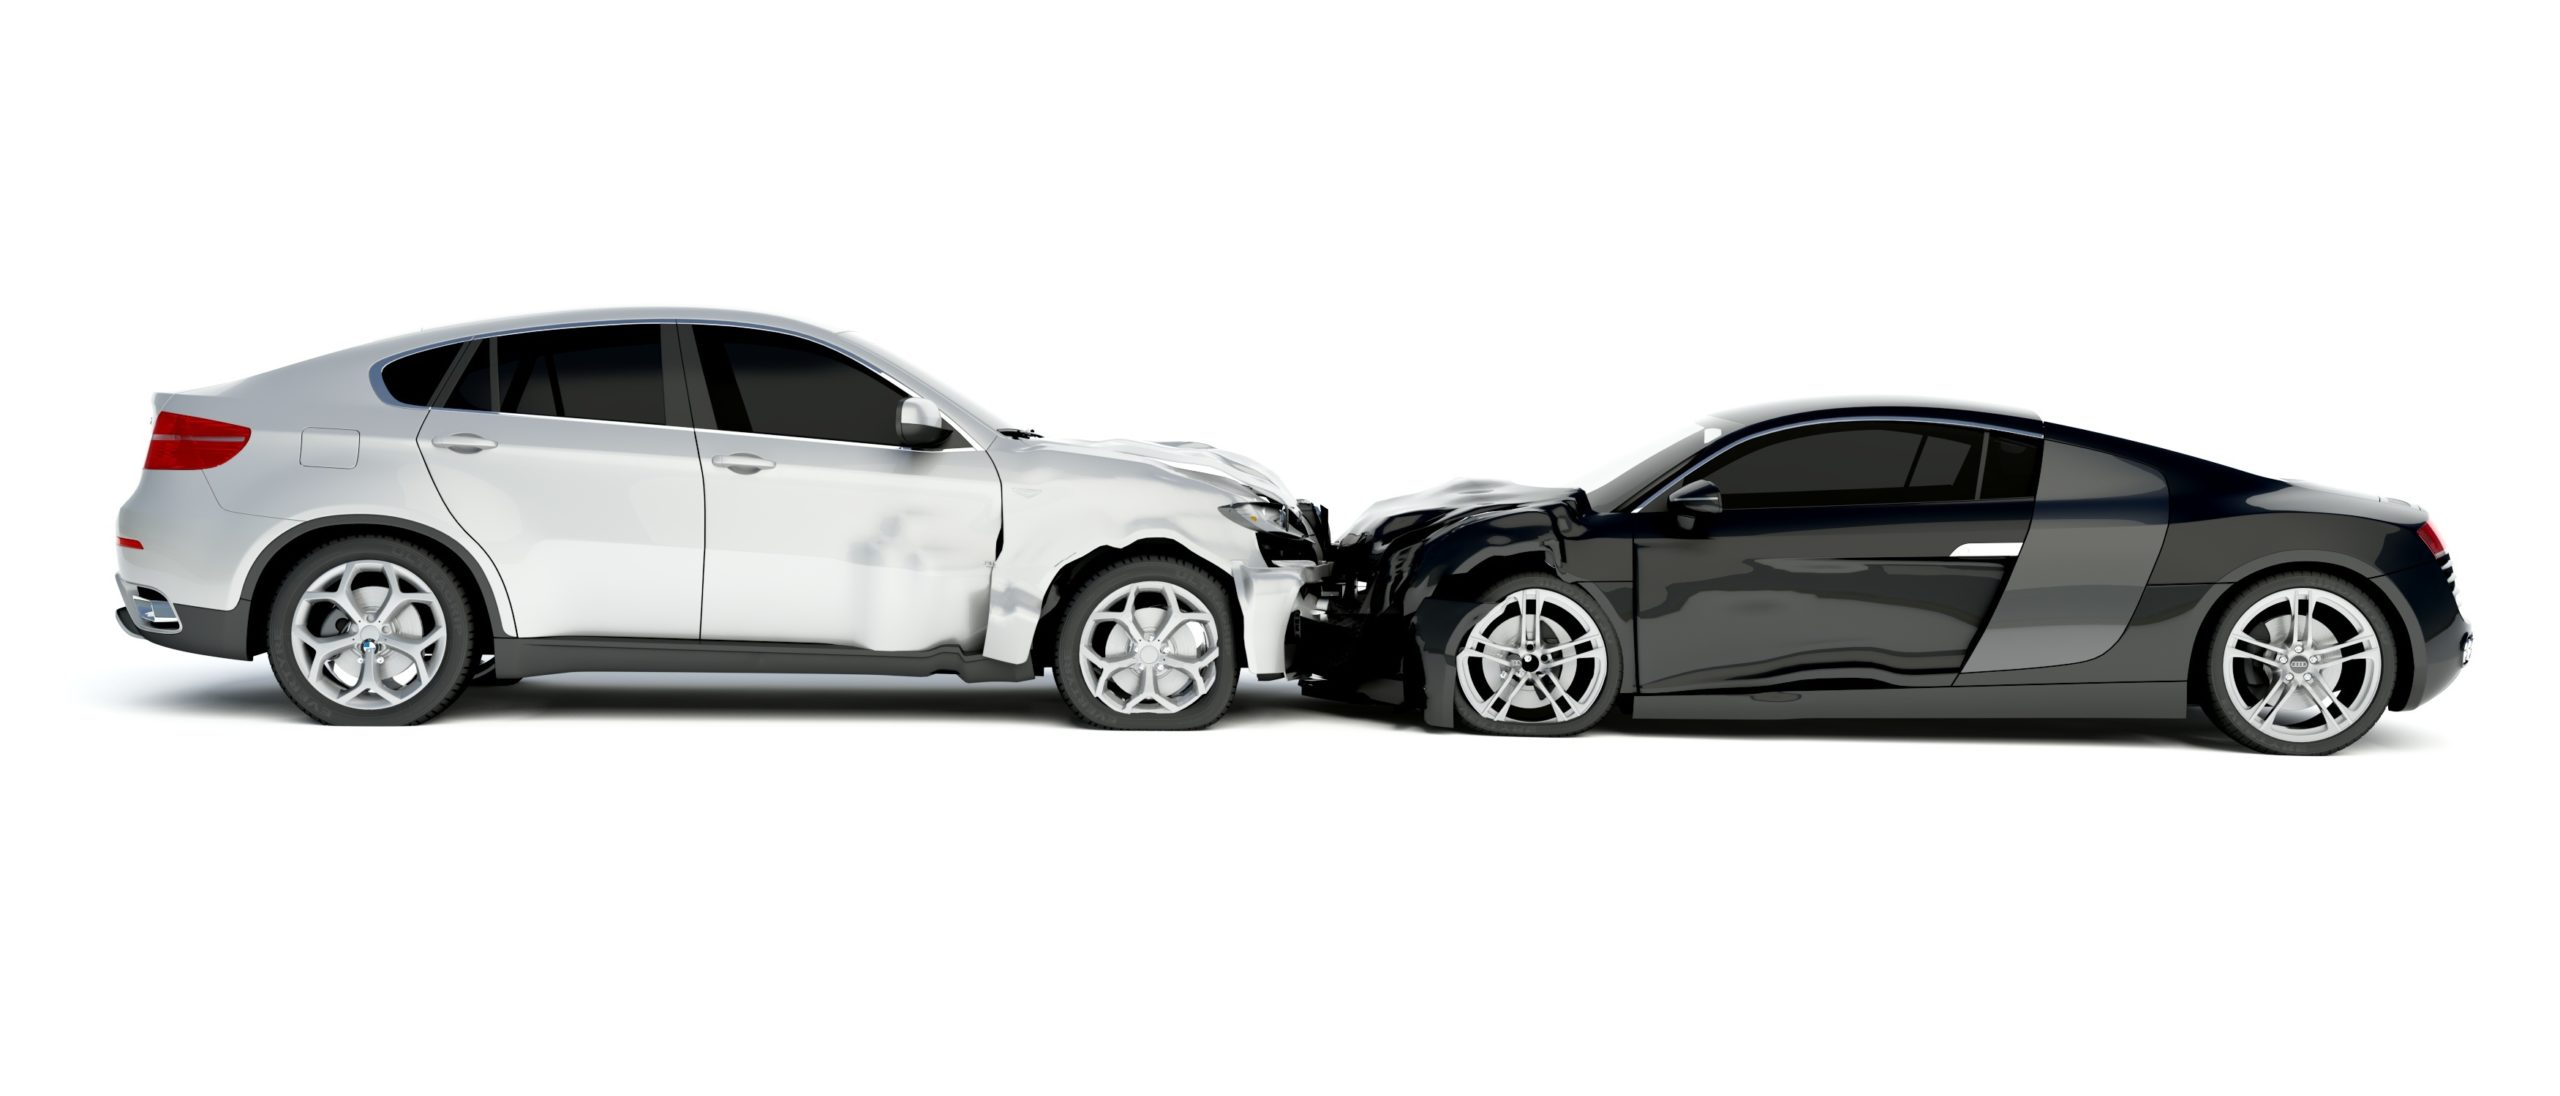 Car Accident? 5 Reasons You Need an Attorney